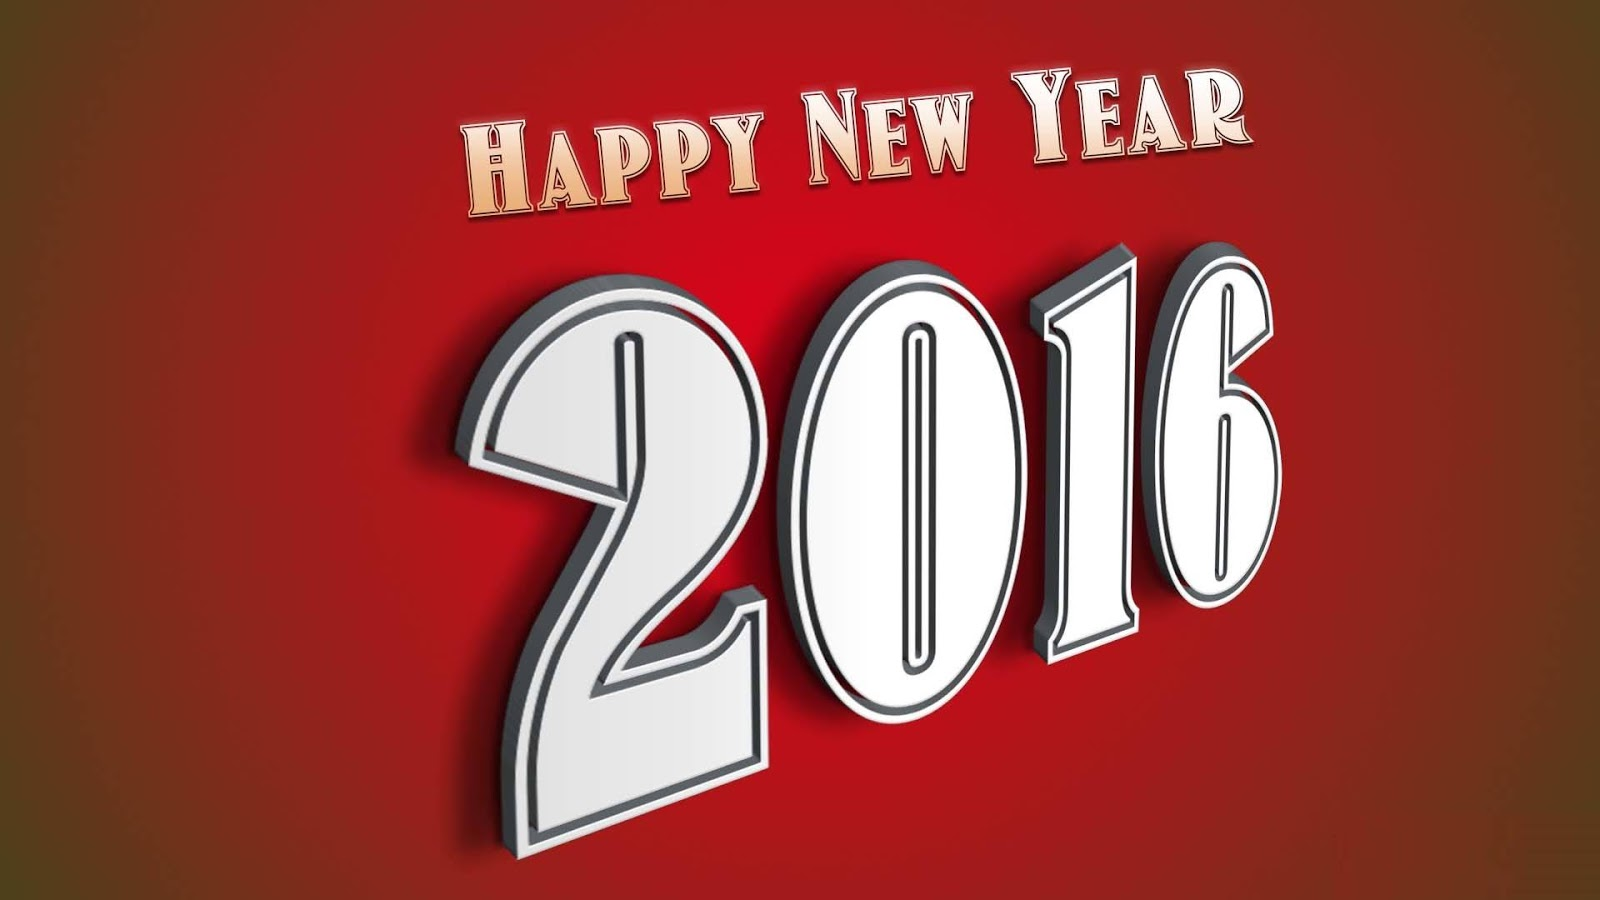 Happy new year 2016 images high resolution realistic for Happy new year coloring pages 2016